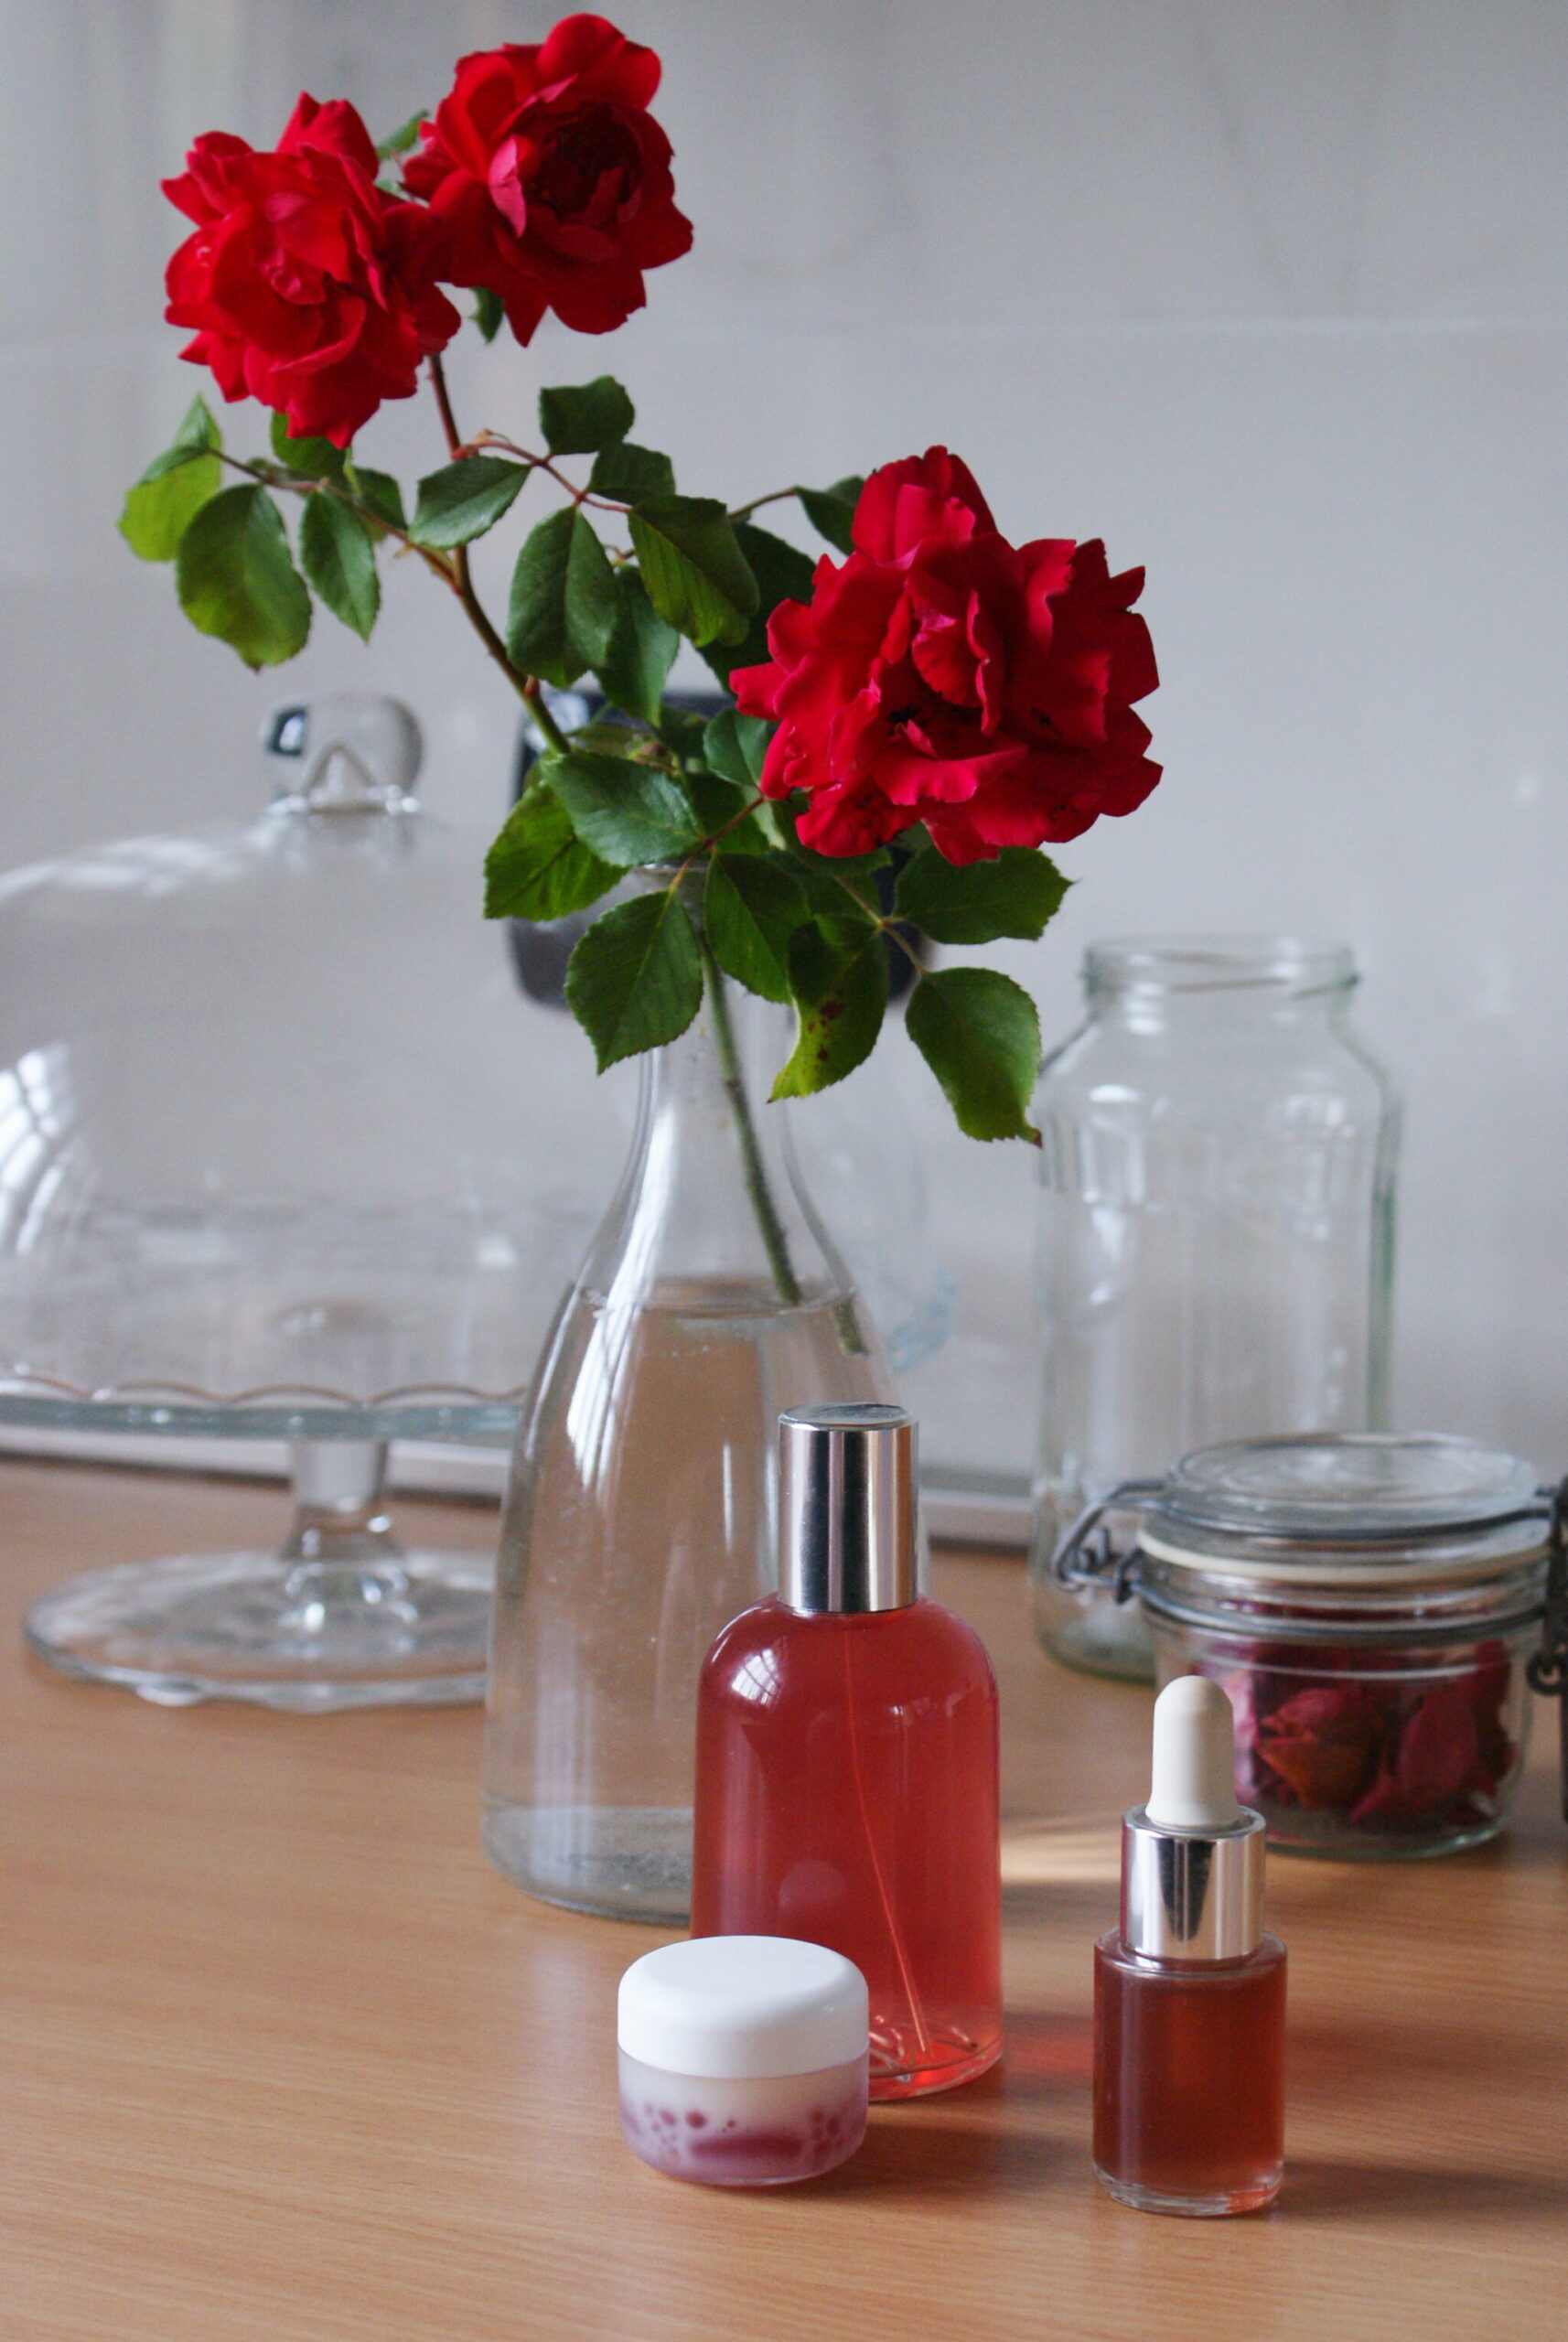 3 DIY ROSE SKINCARE PRODUCT RECIPES TO MAKE AT HOME (VIDEO)